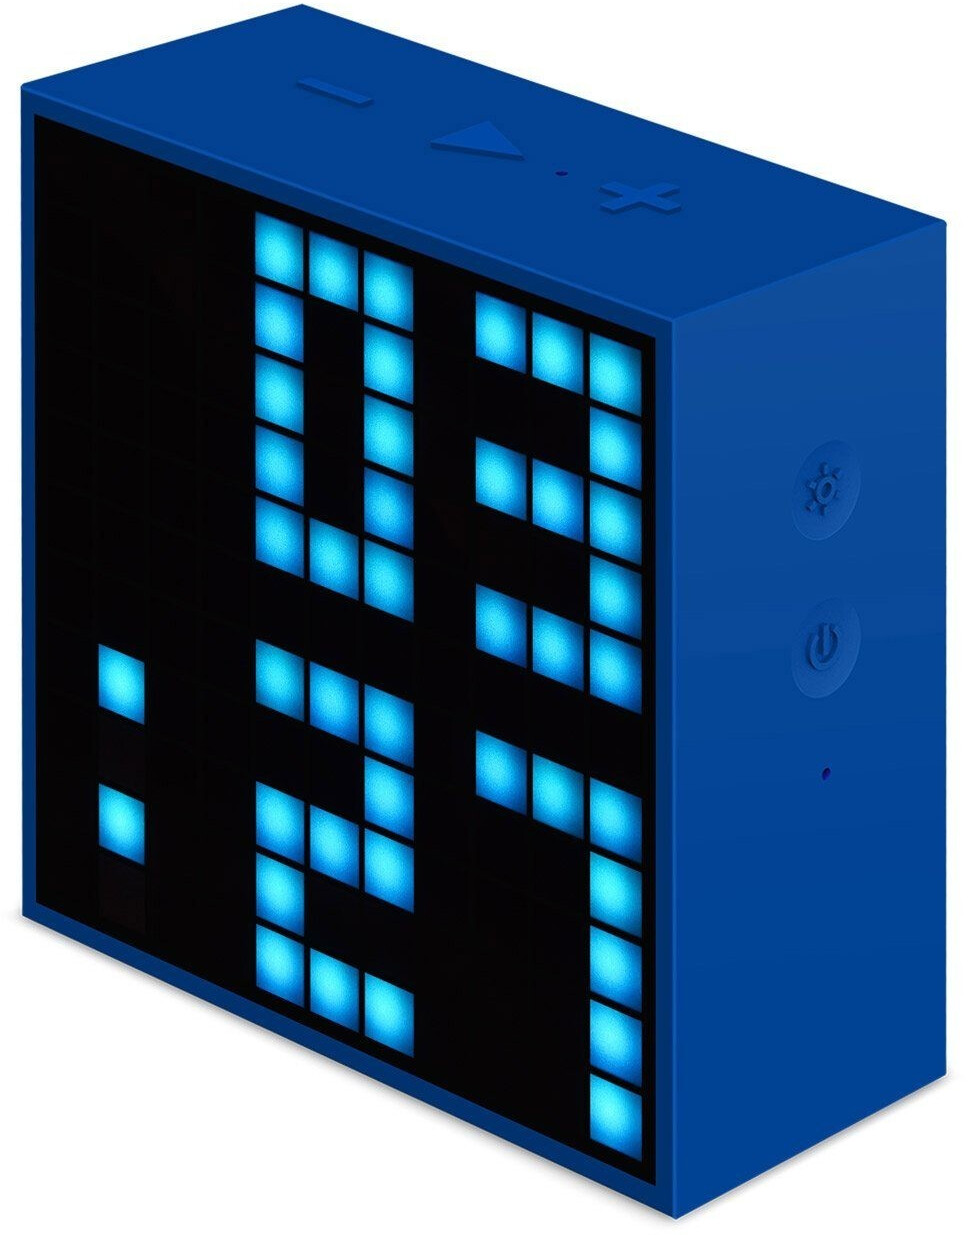 Image of Divoom Timebox-mini blue